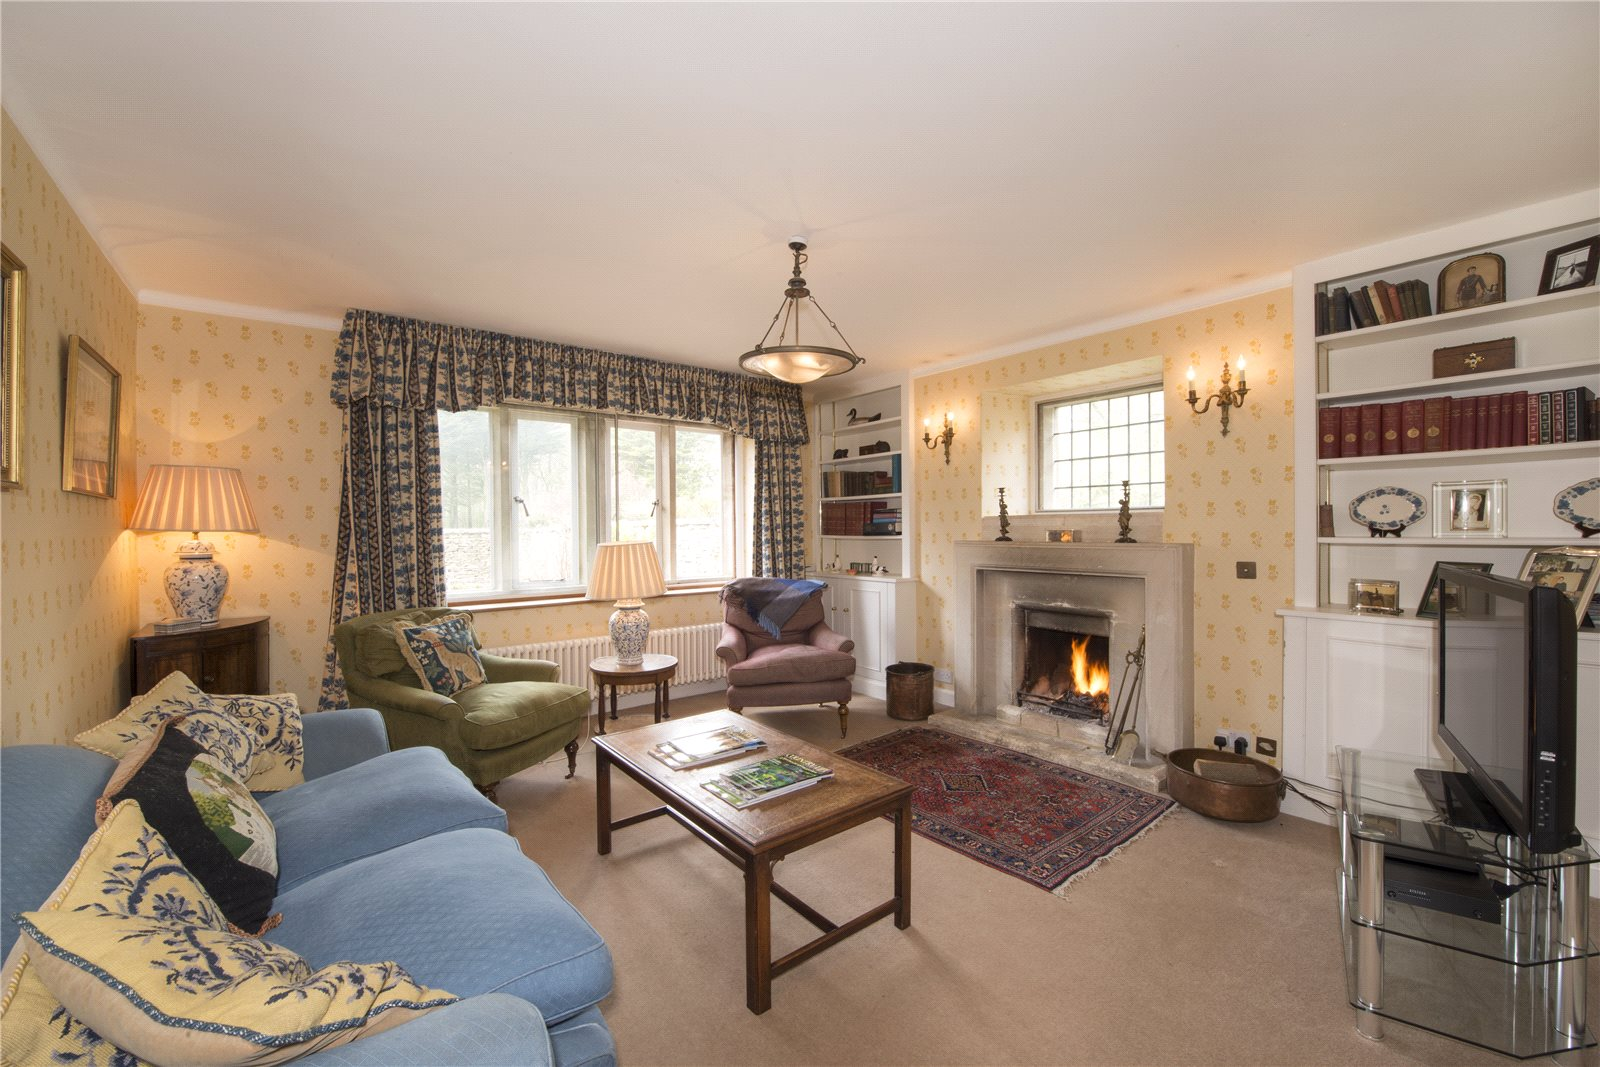 Additional photo for property listing at Warrens Gorse, Daglingworth, Cirencester, Gloucestershire, GL7 Cirencester, Inglaterra